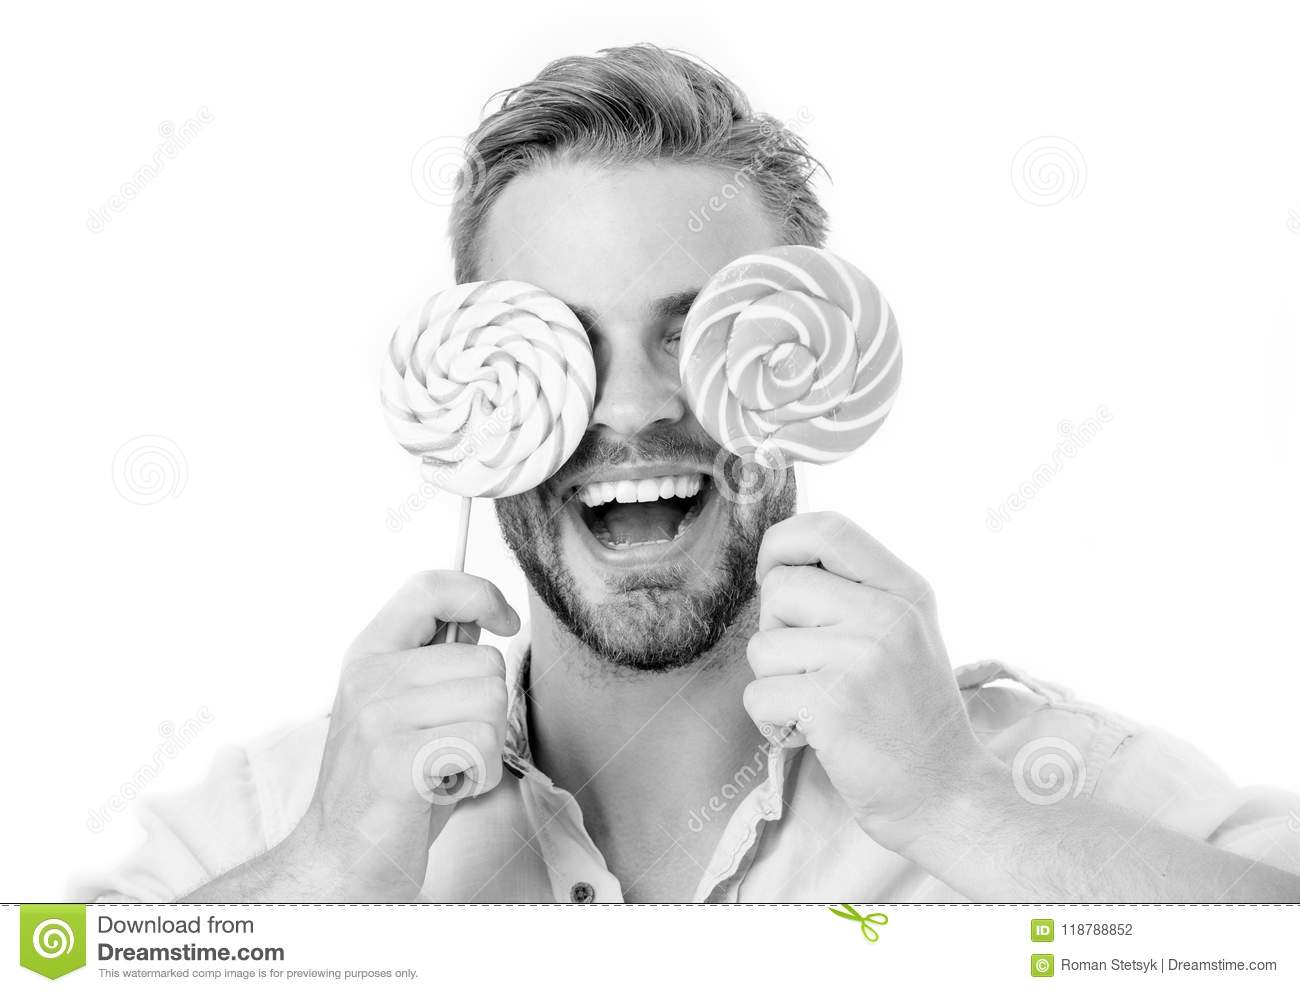 Happy guy with candy glasses isolated on white background. Man smile with lollipop on sticks. Summer. Food and snack